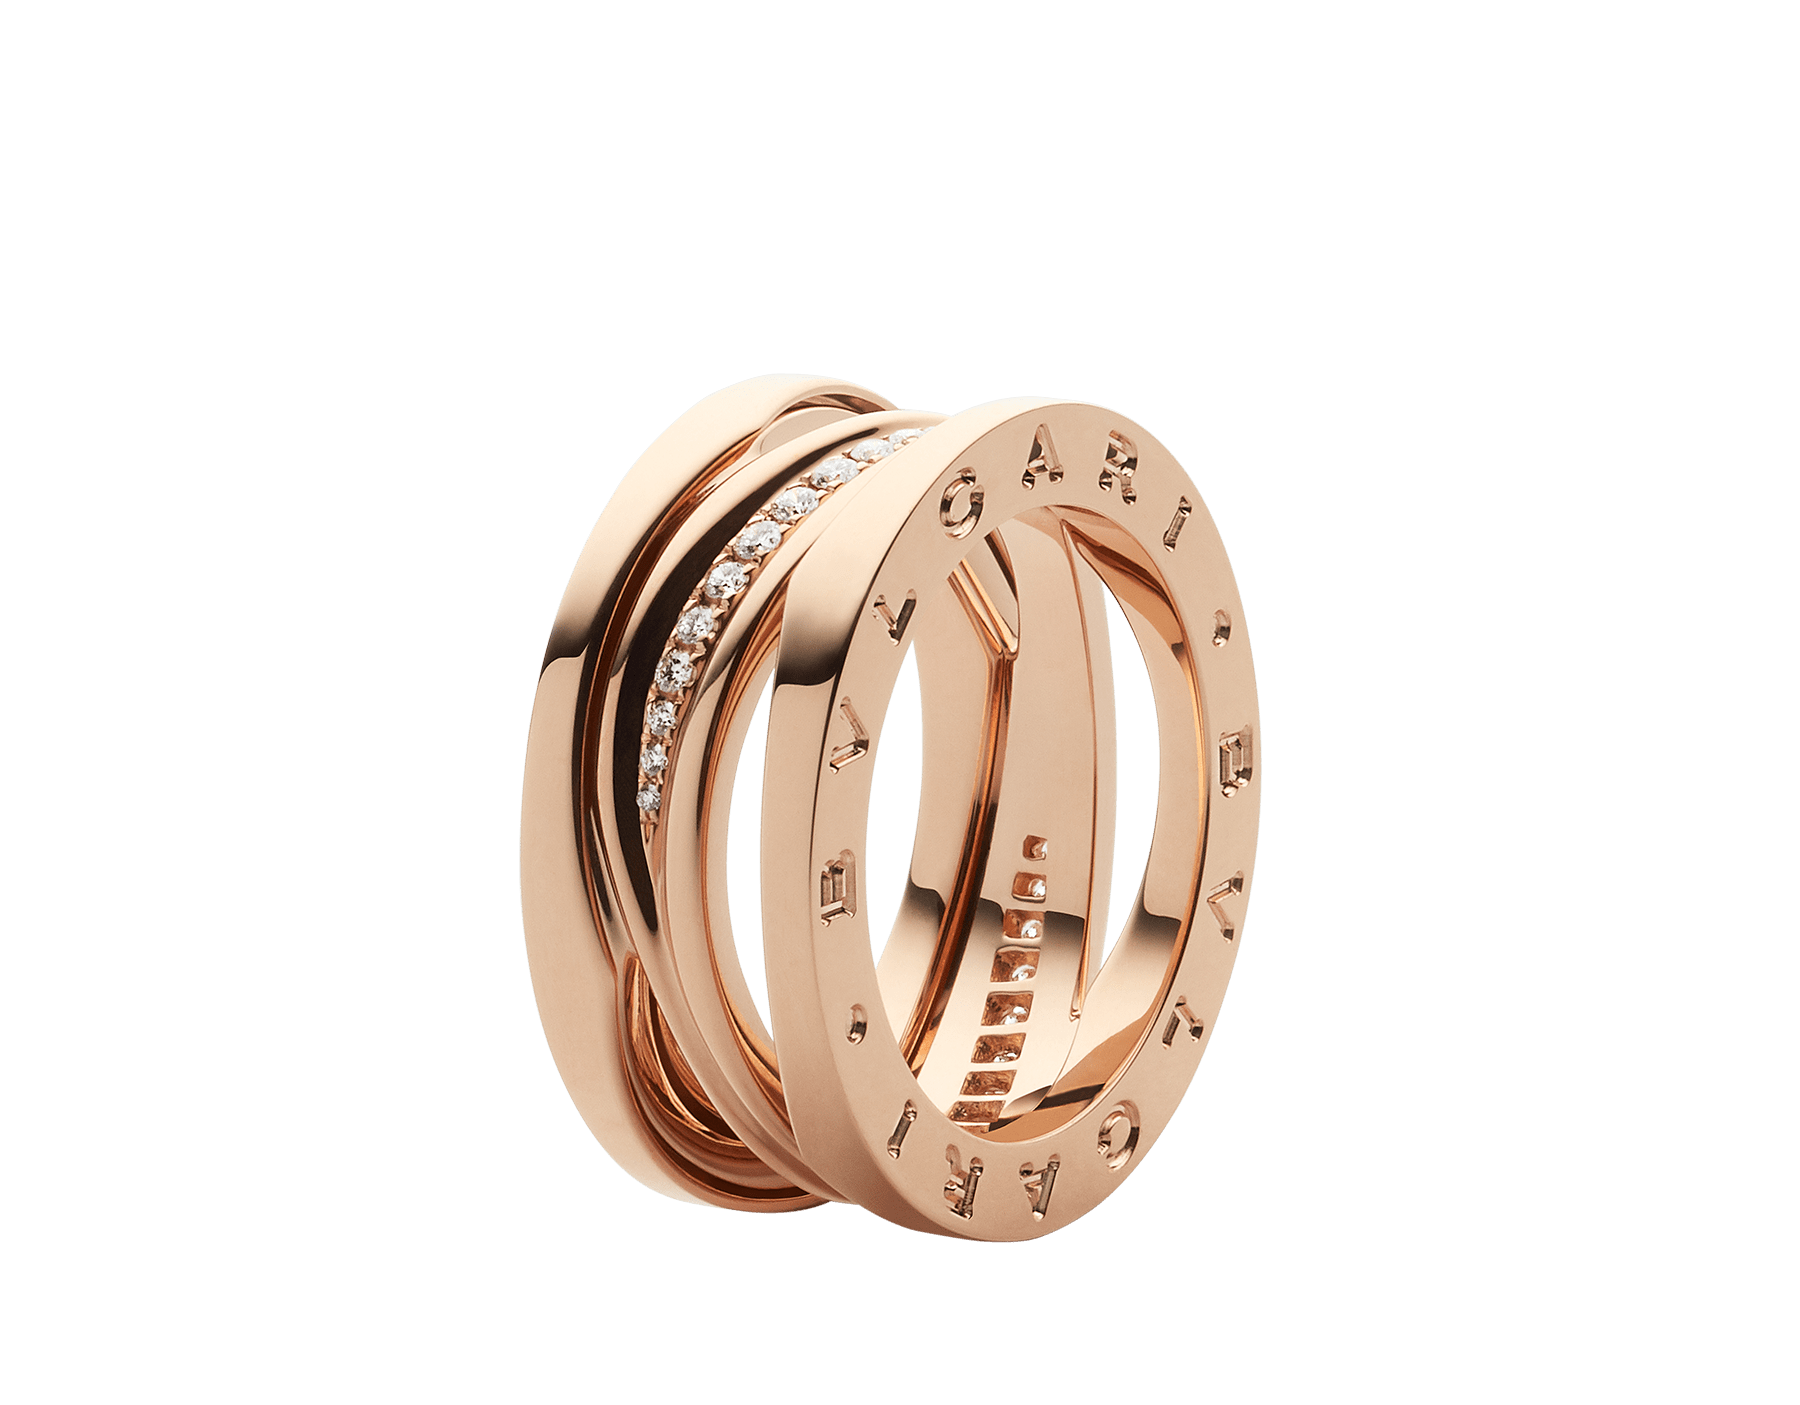 B.zero1 Design Legend ring in 18 kt rose gold set with pavé diamonds on the spiral. AN858365 image 1